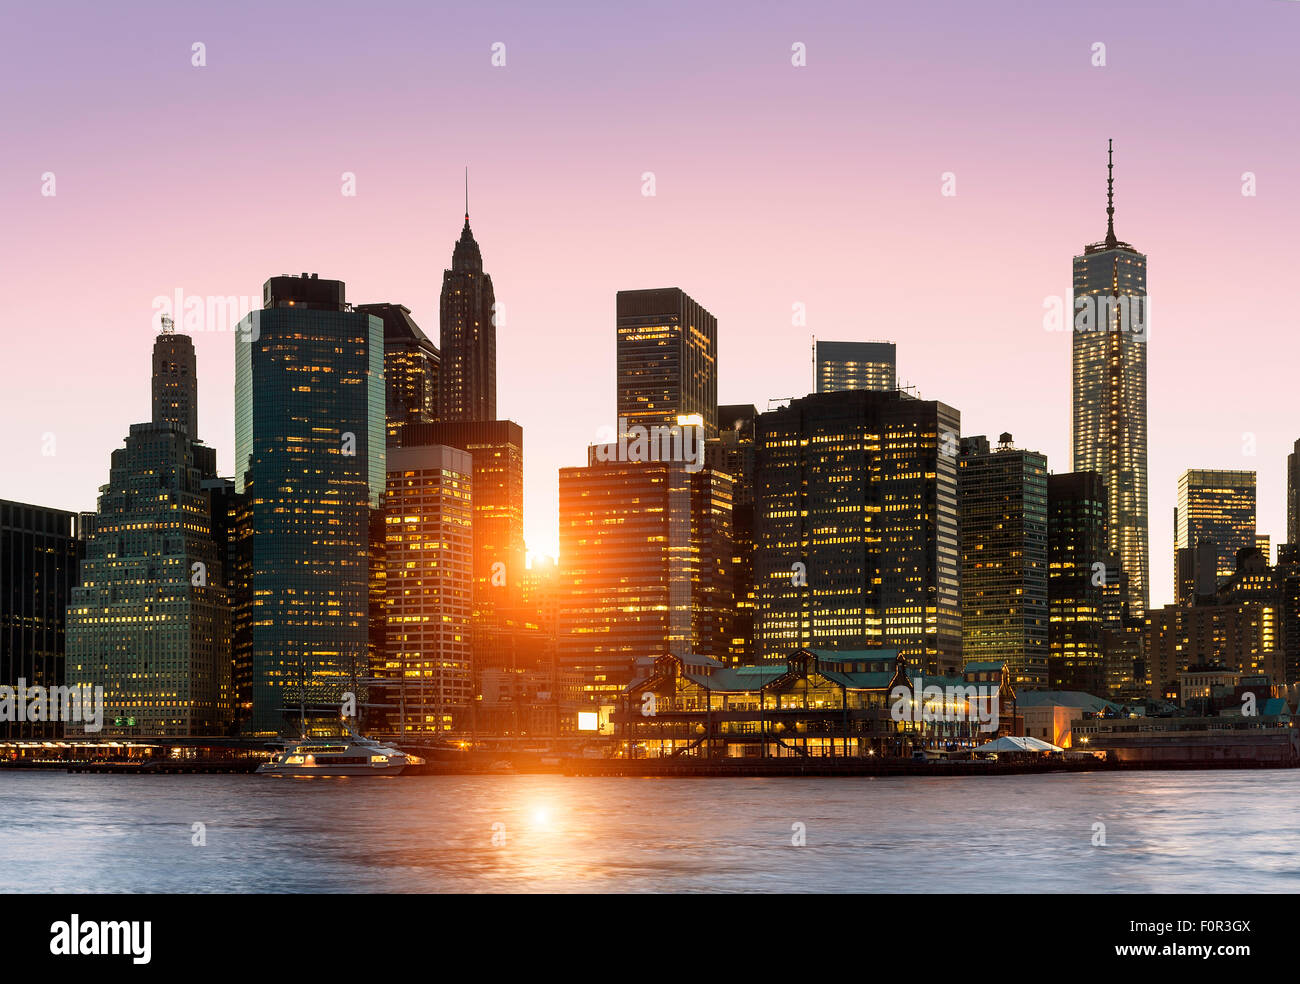 New York City Skyline by night Photo Stock